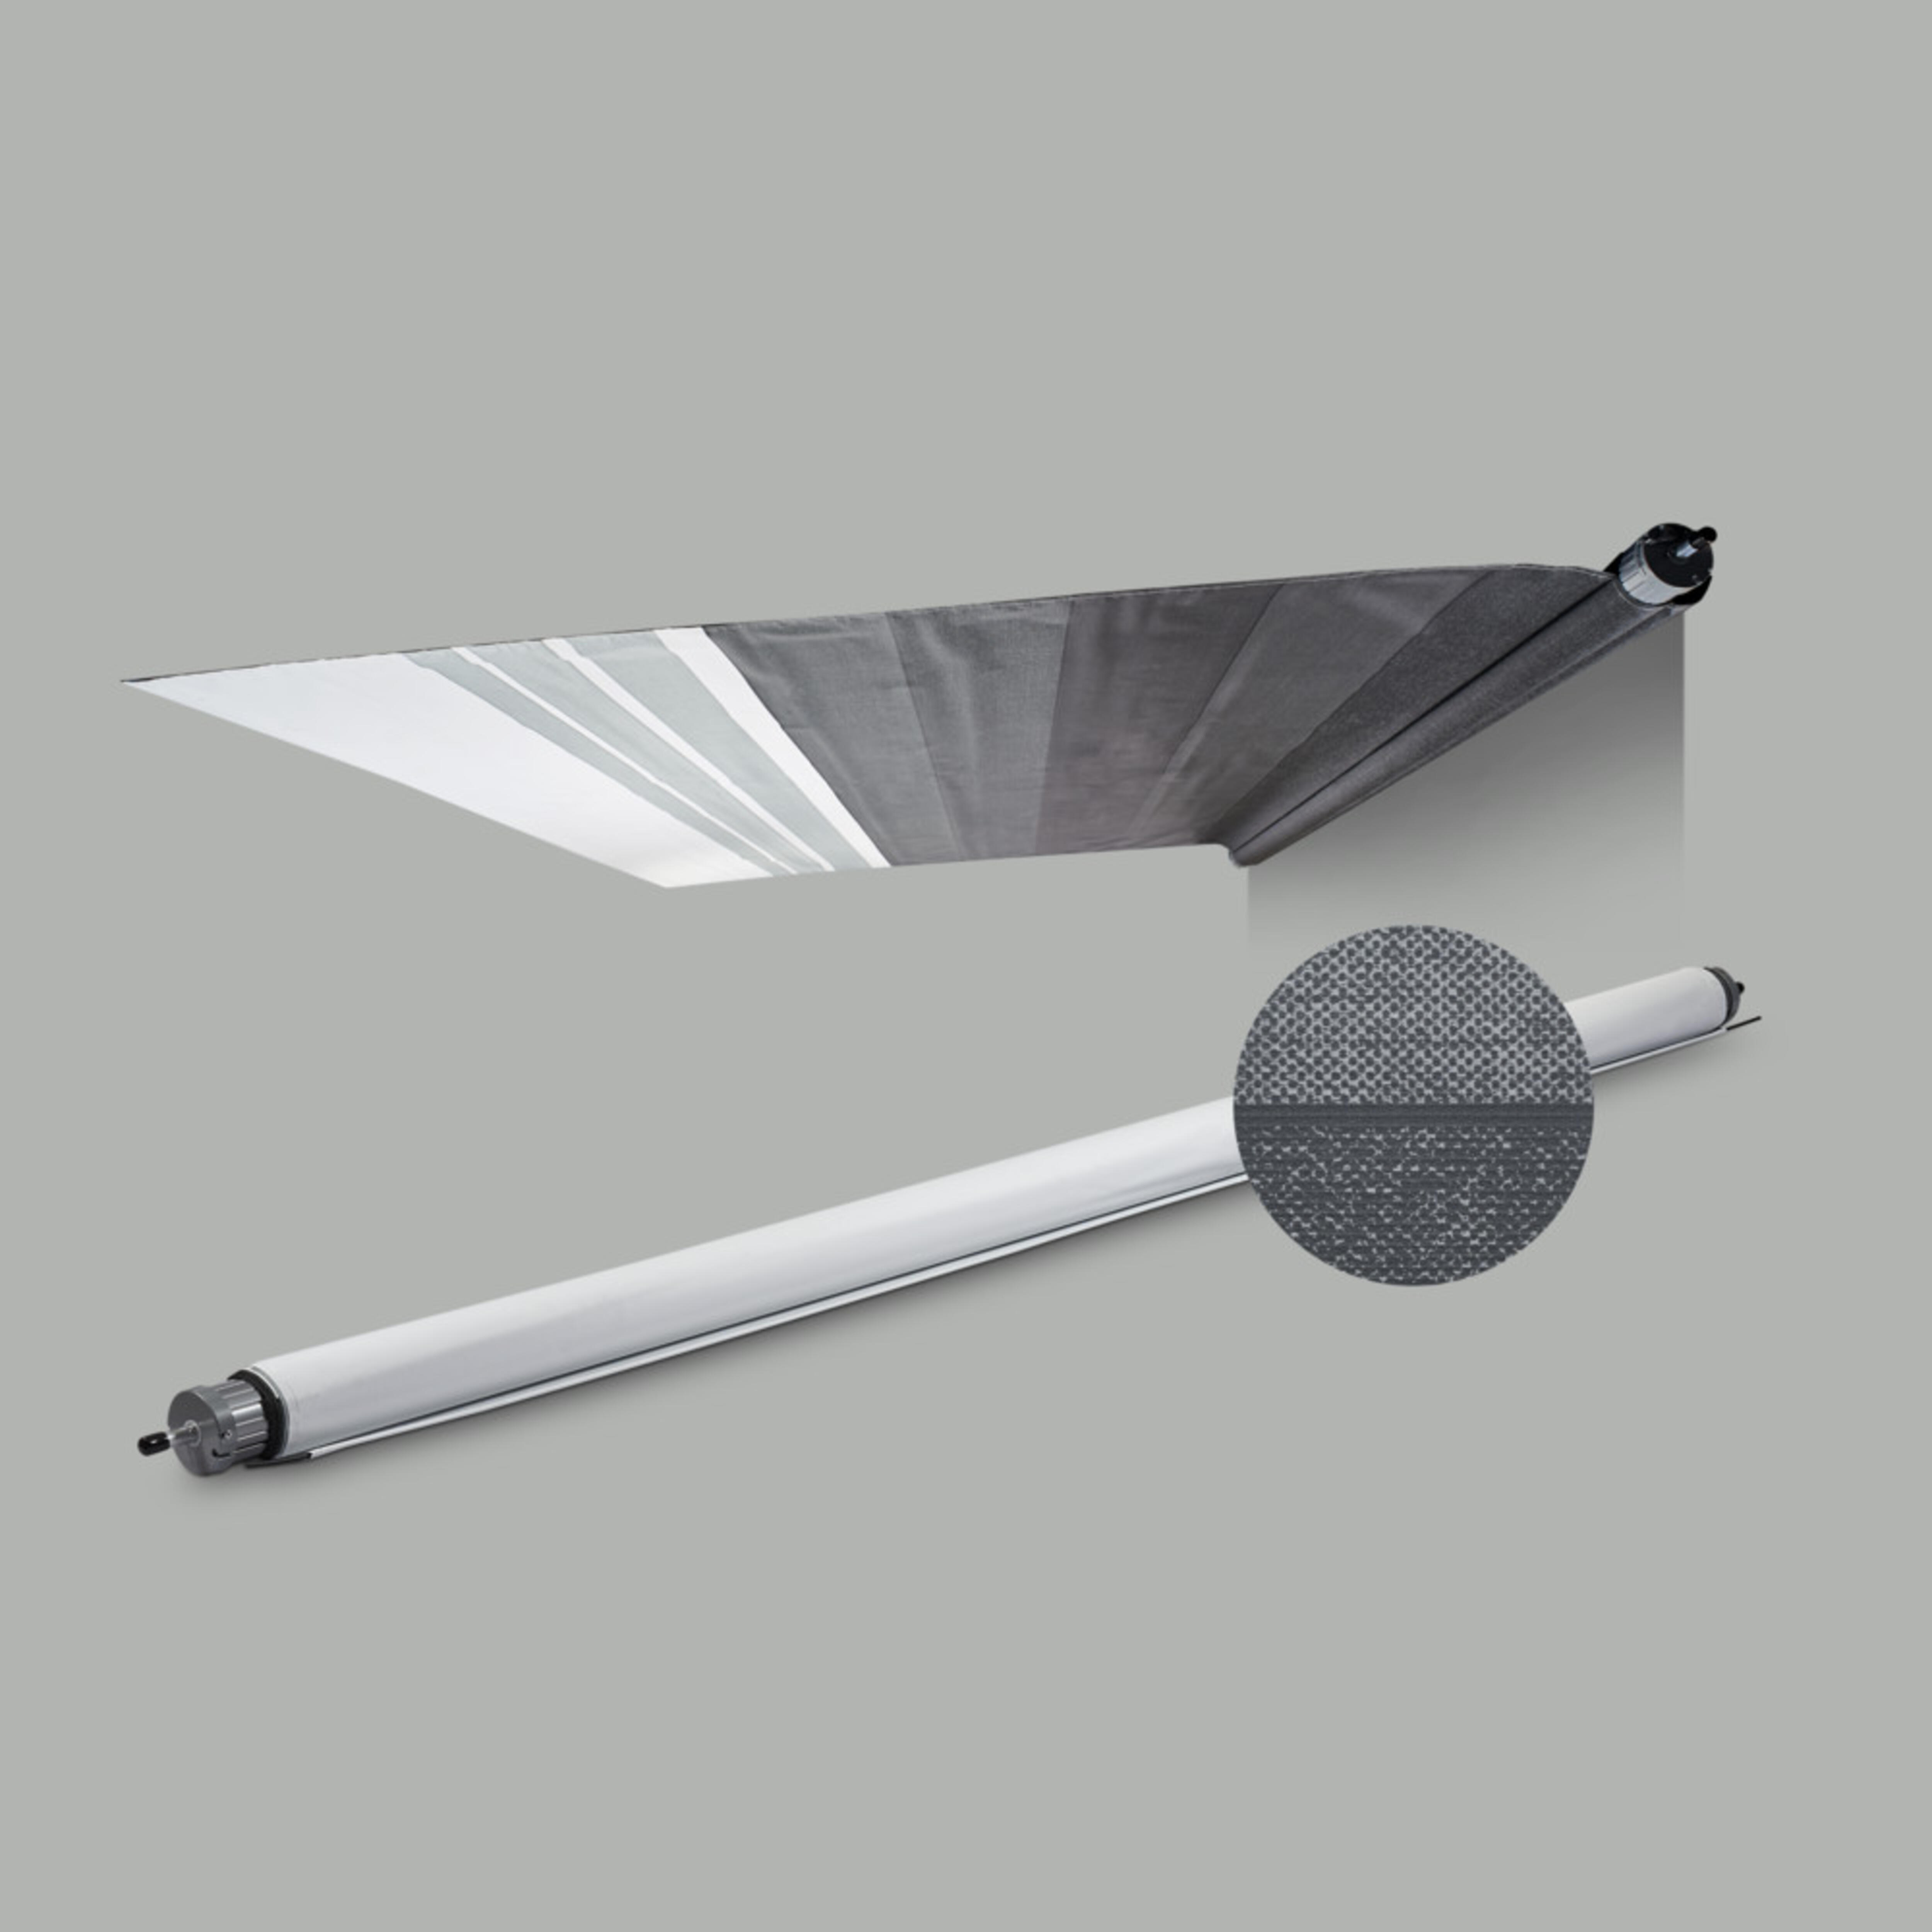 DOMETIC 8300 SUNCHASER AWNING